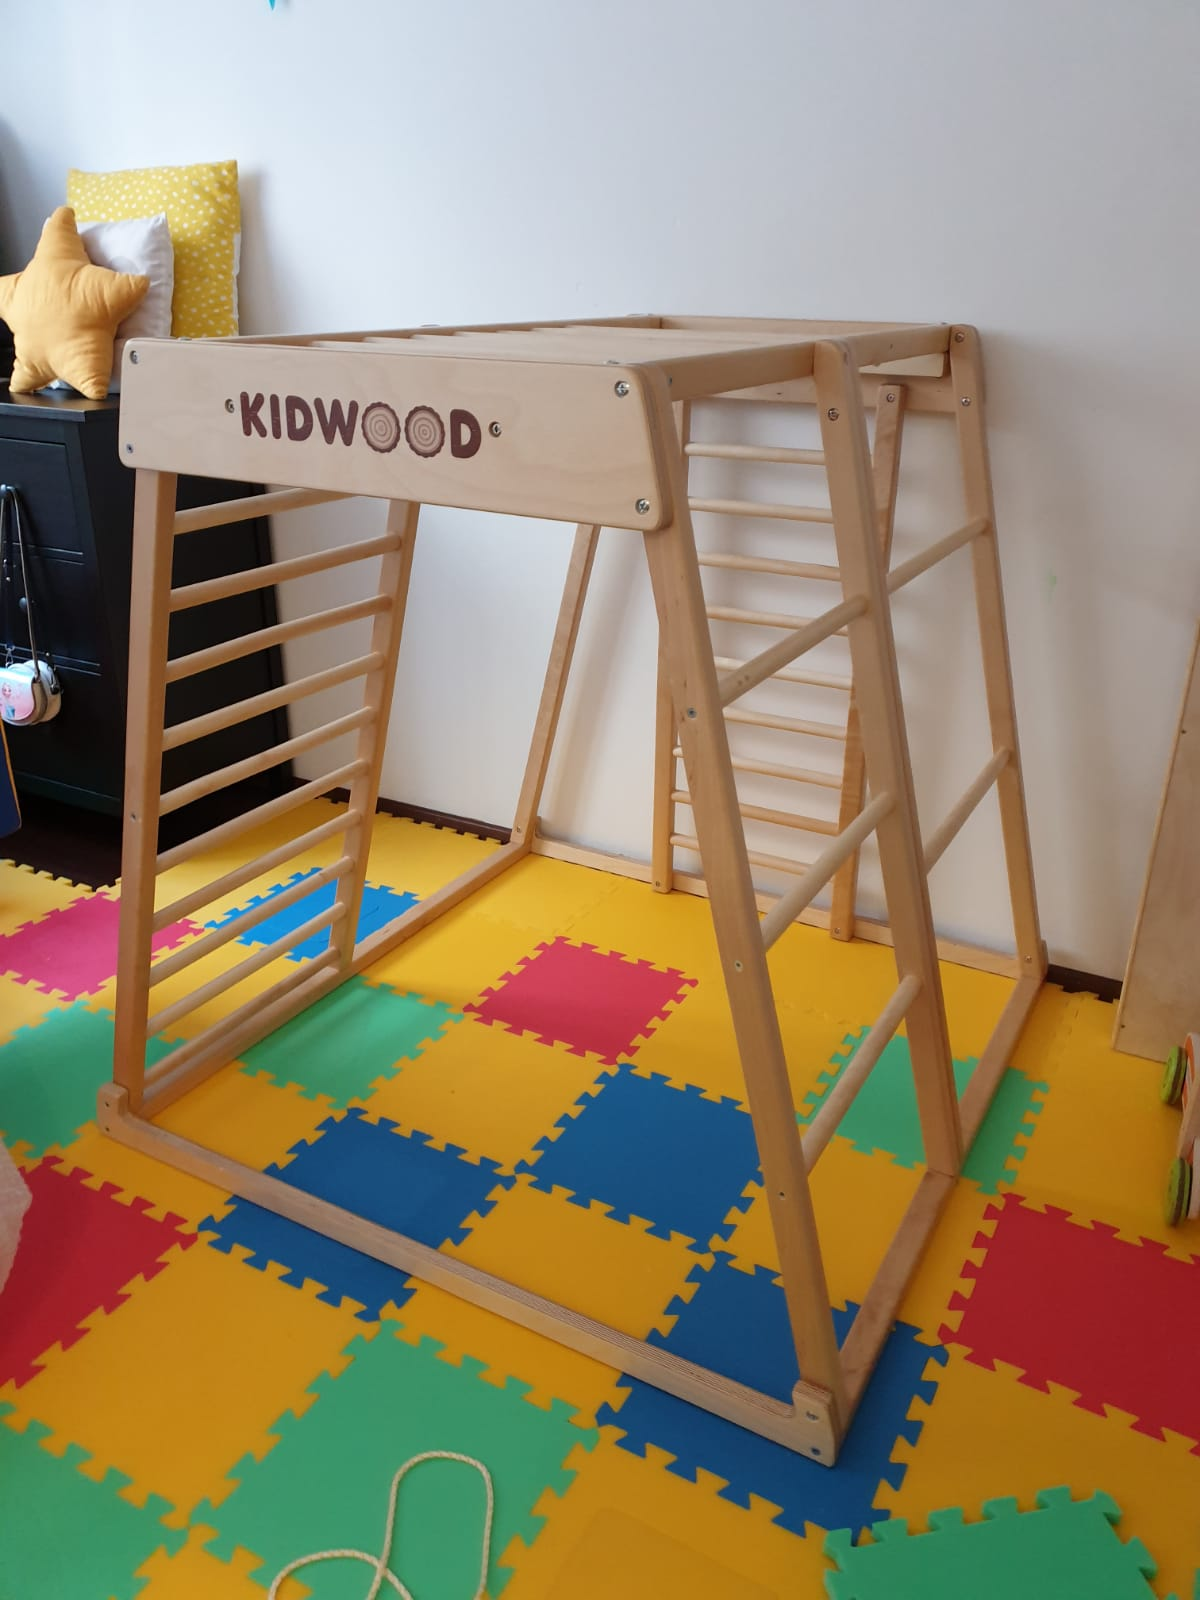 Kidwood (Modell Rakete)